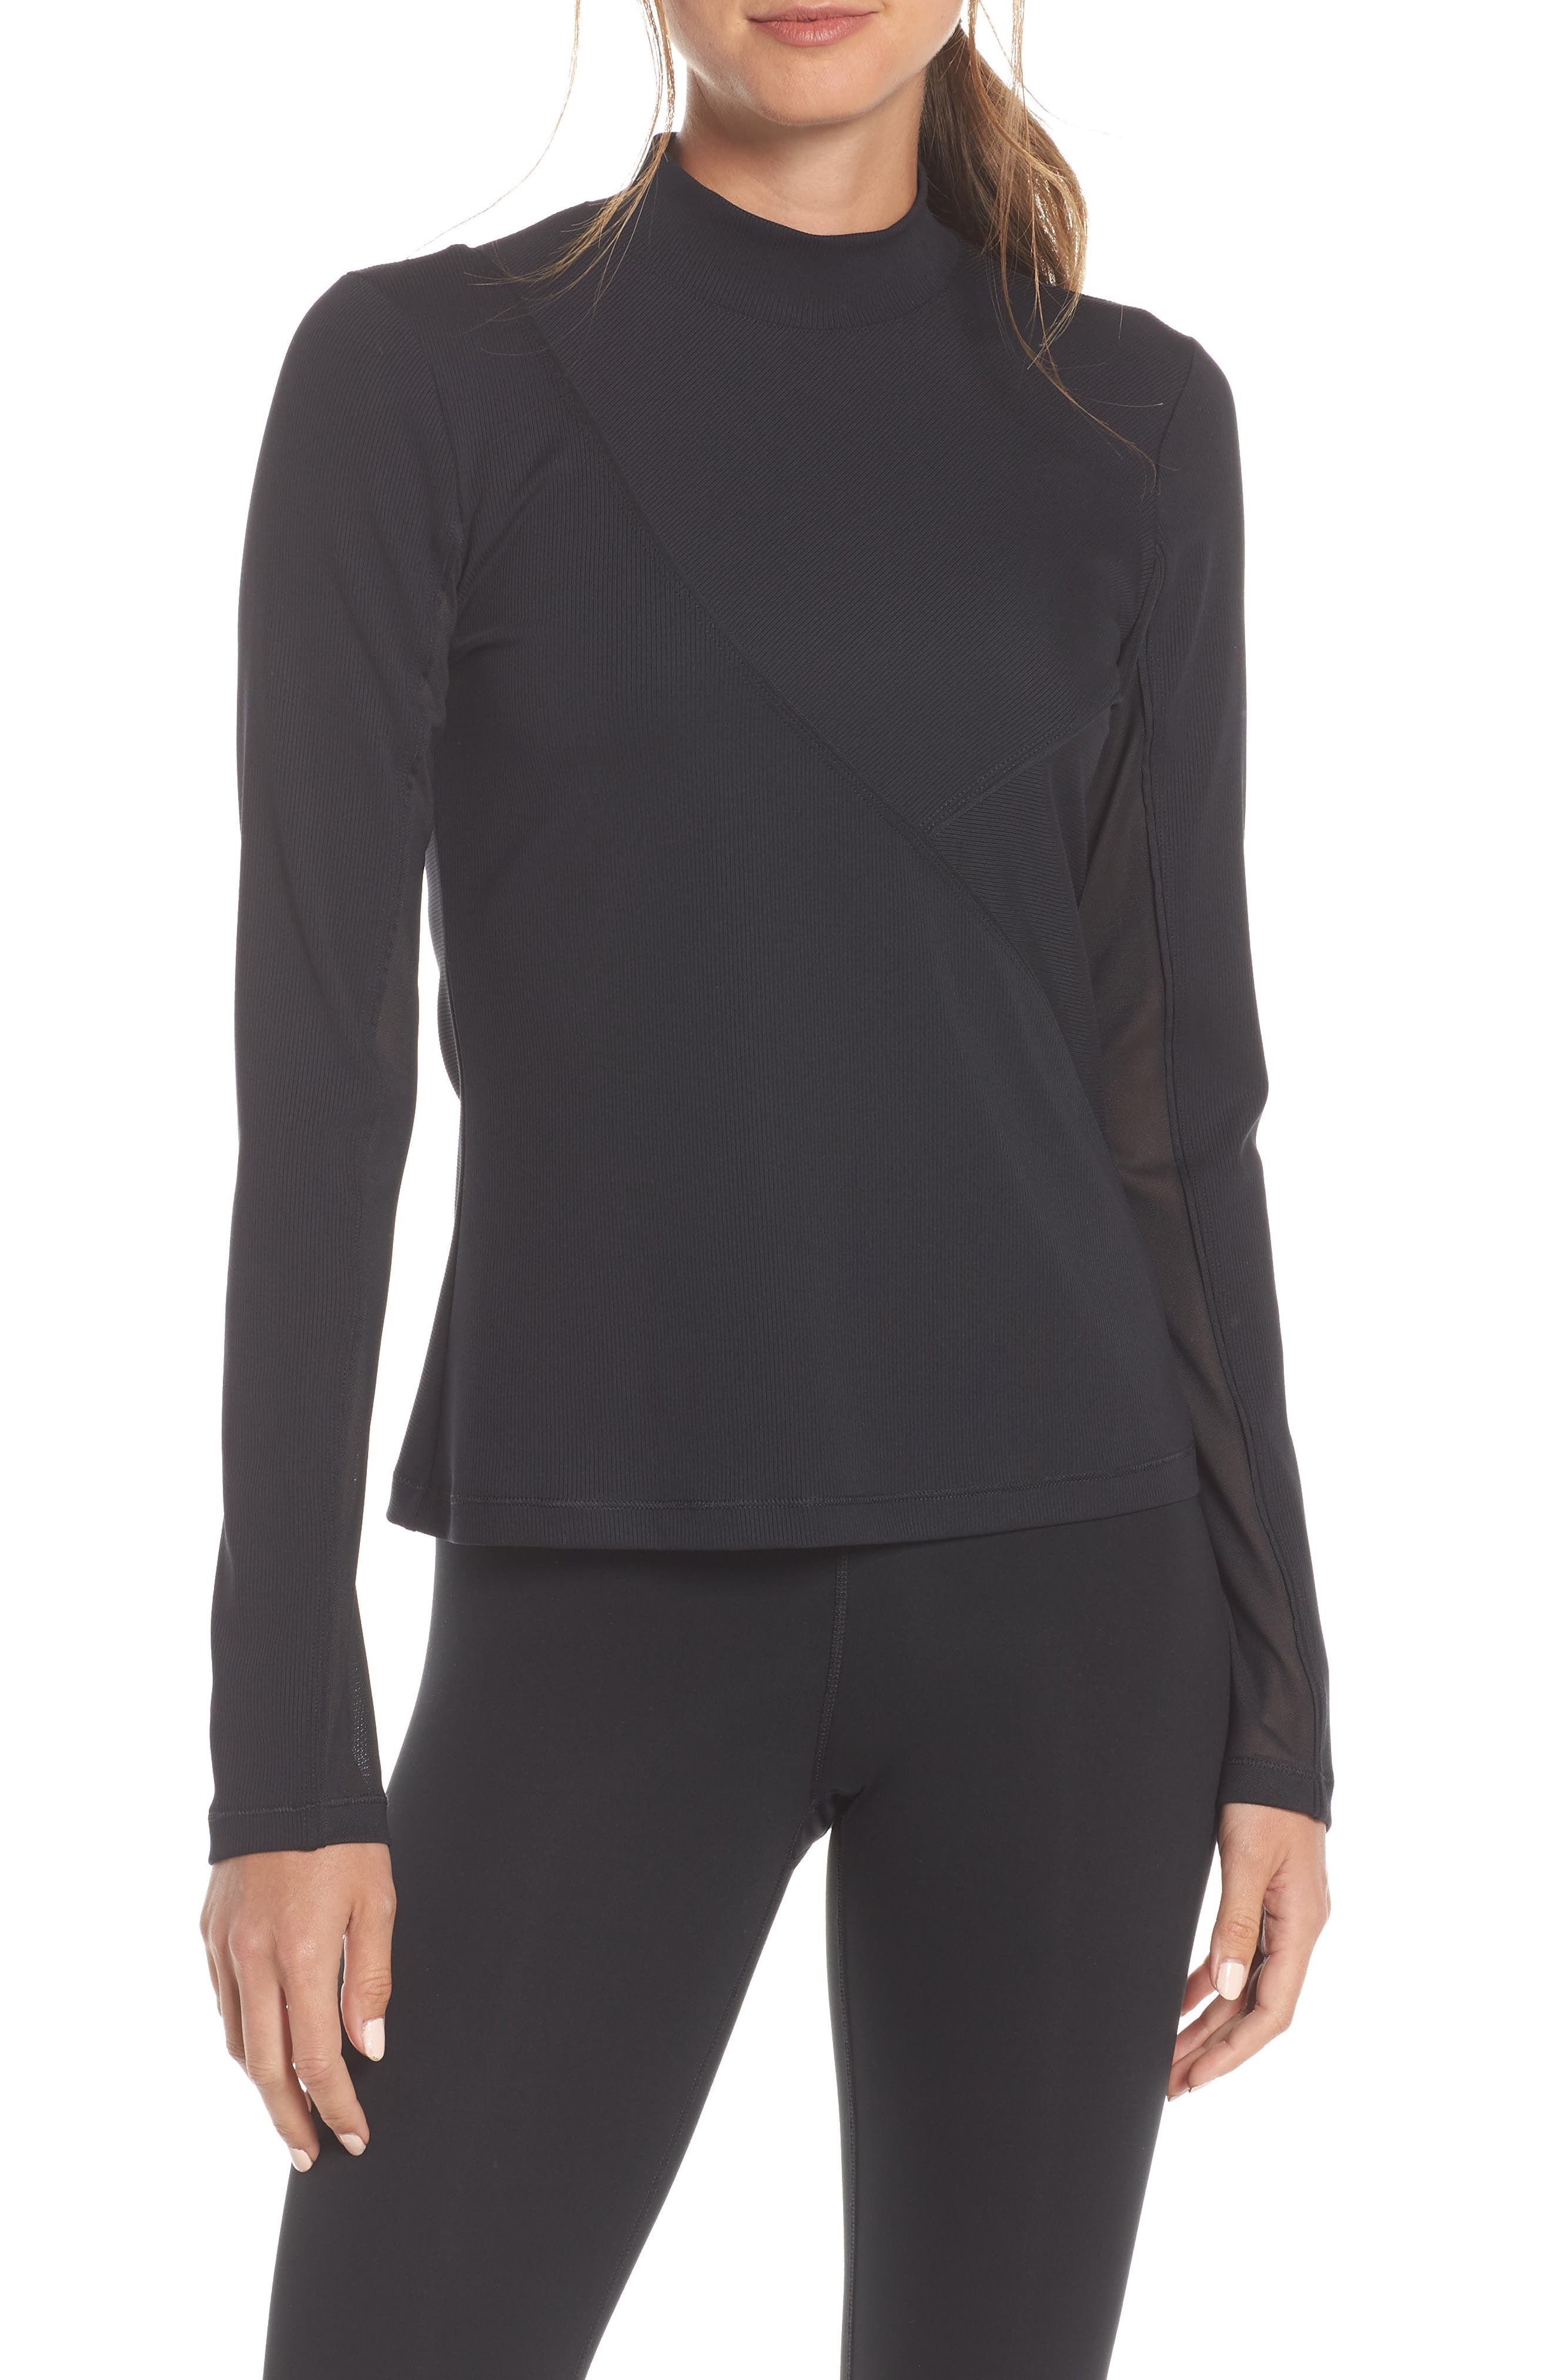 The Nike Pro HyperCool Women's Long Sleeve Ribbed Top,                             Main thumbnail 1, color,                             BLACK/ CLEAR